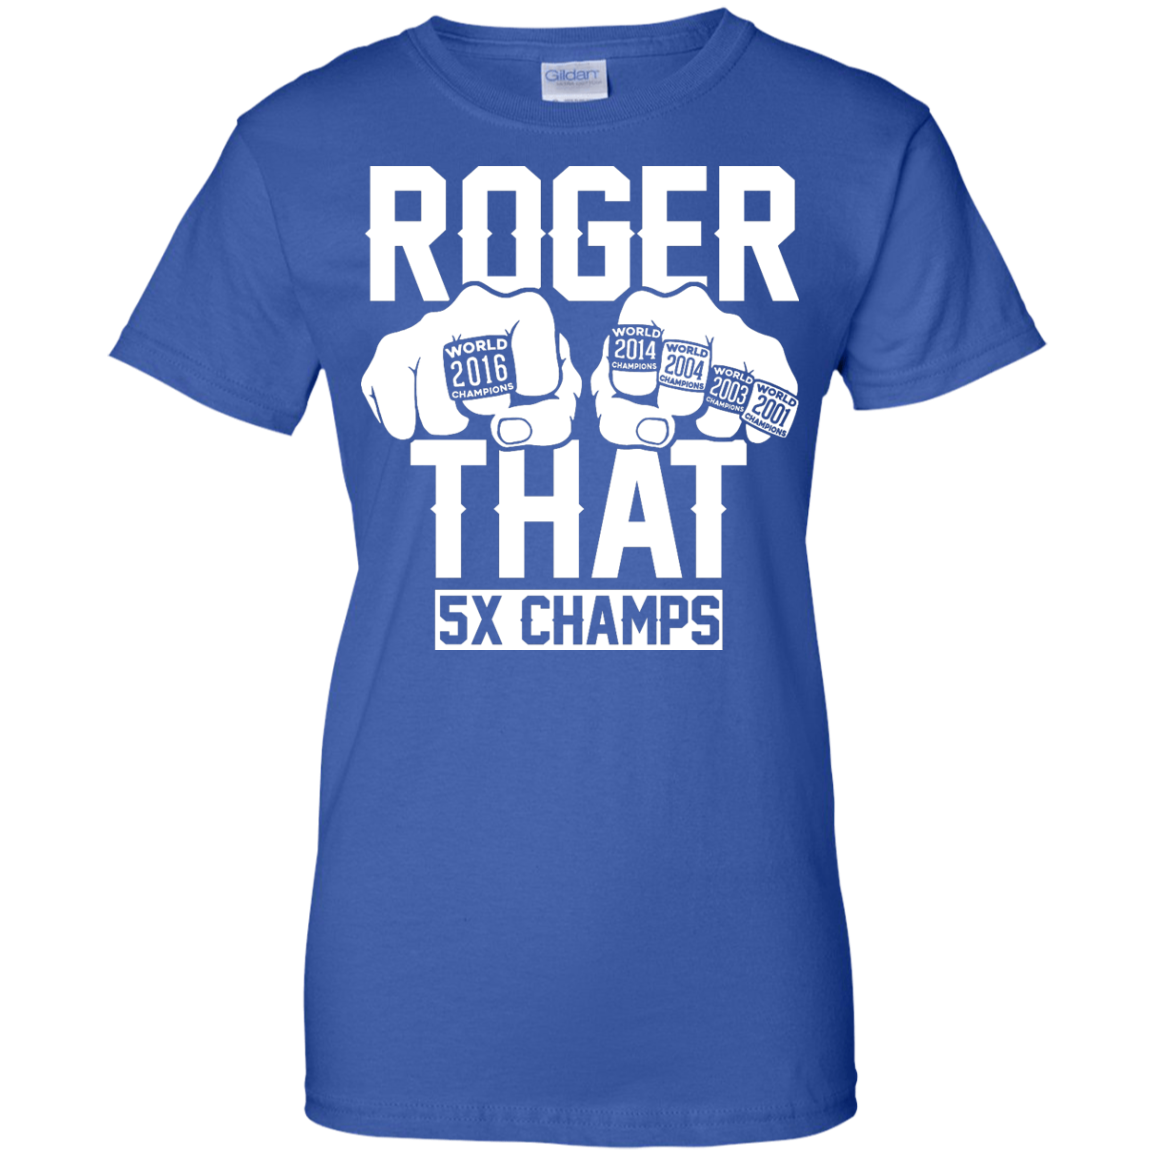 image 849px Roger That 5x Champs – Brady Trolls Goodell T Shirts